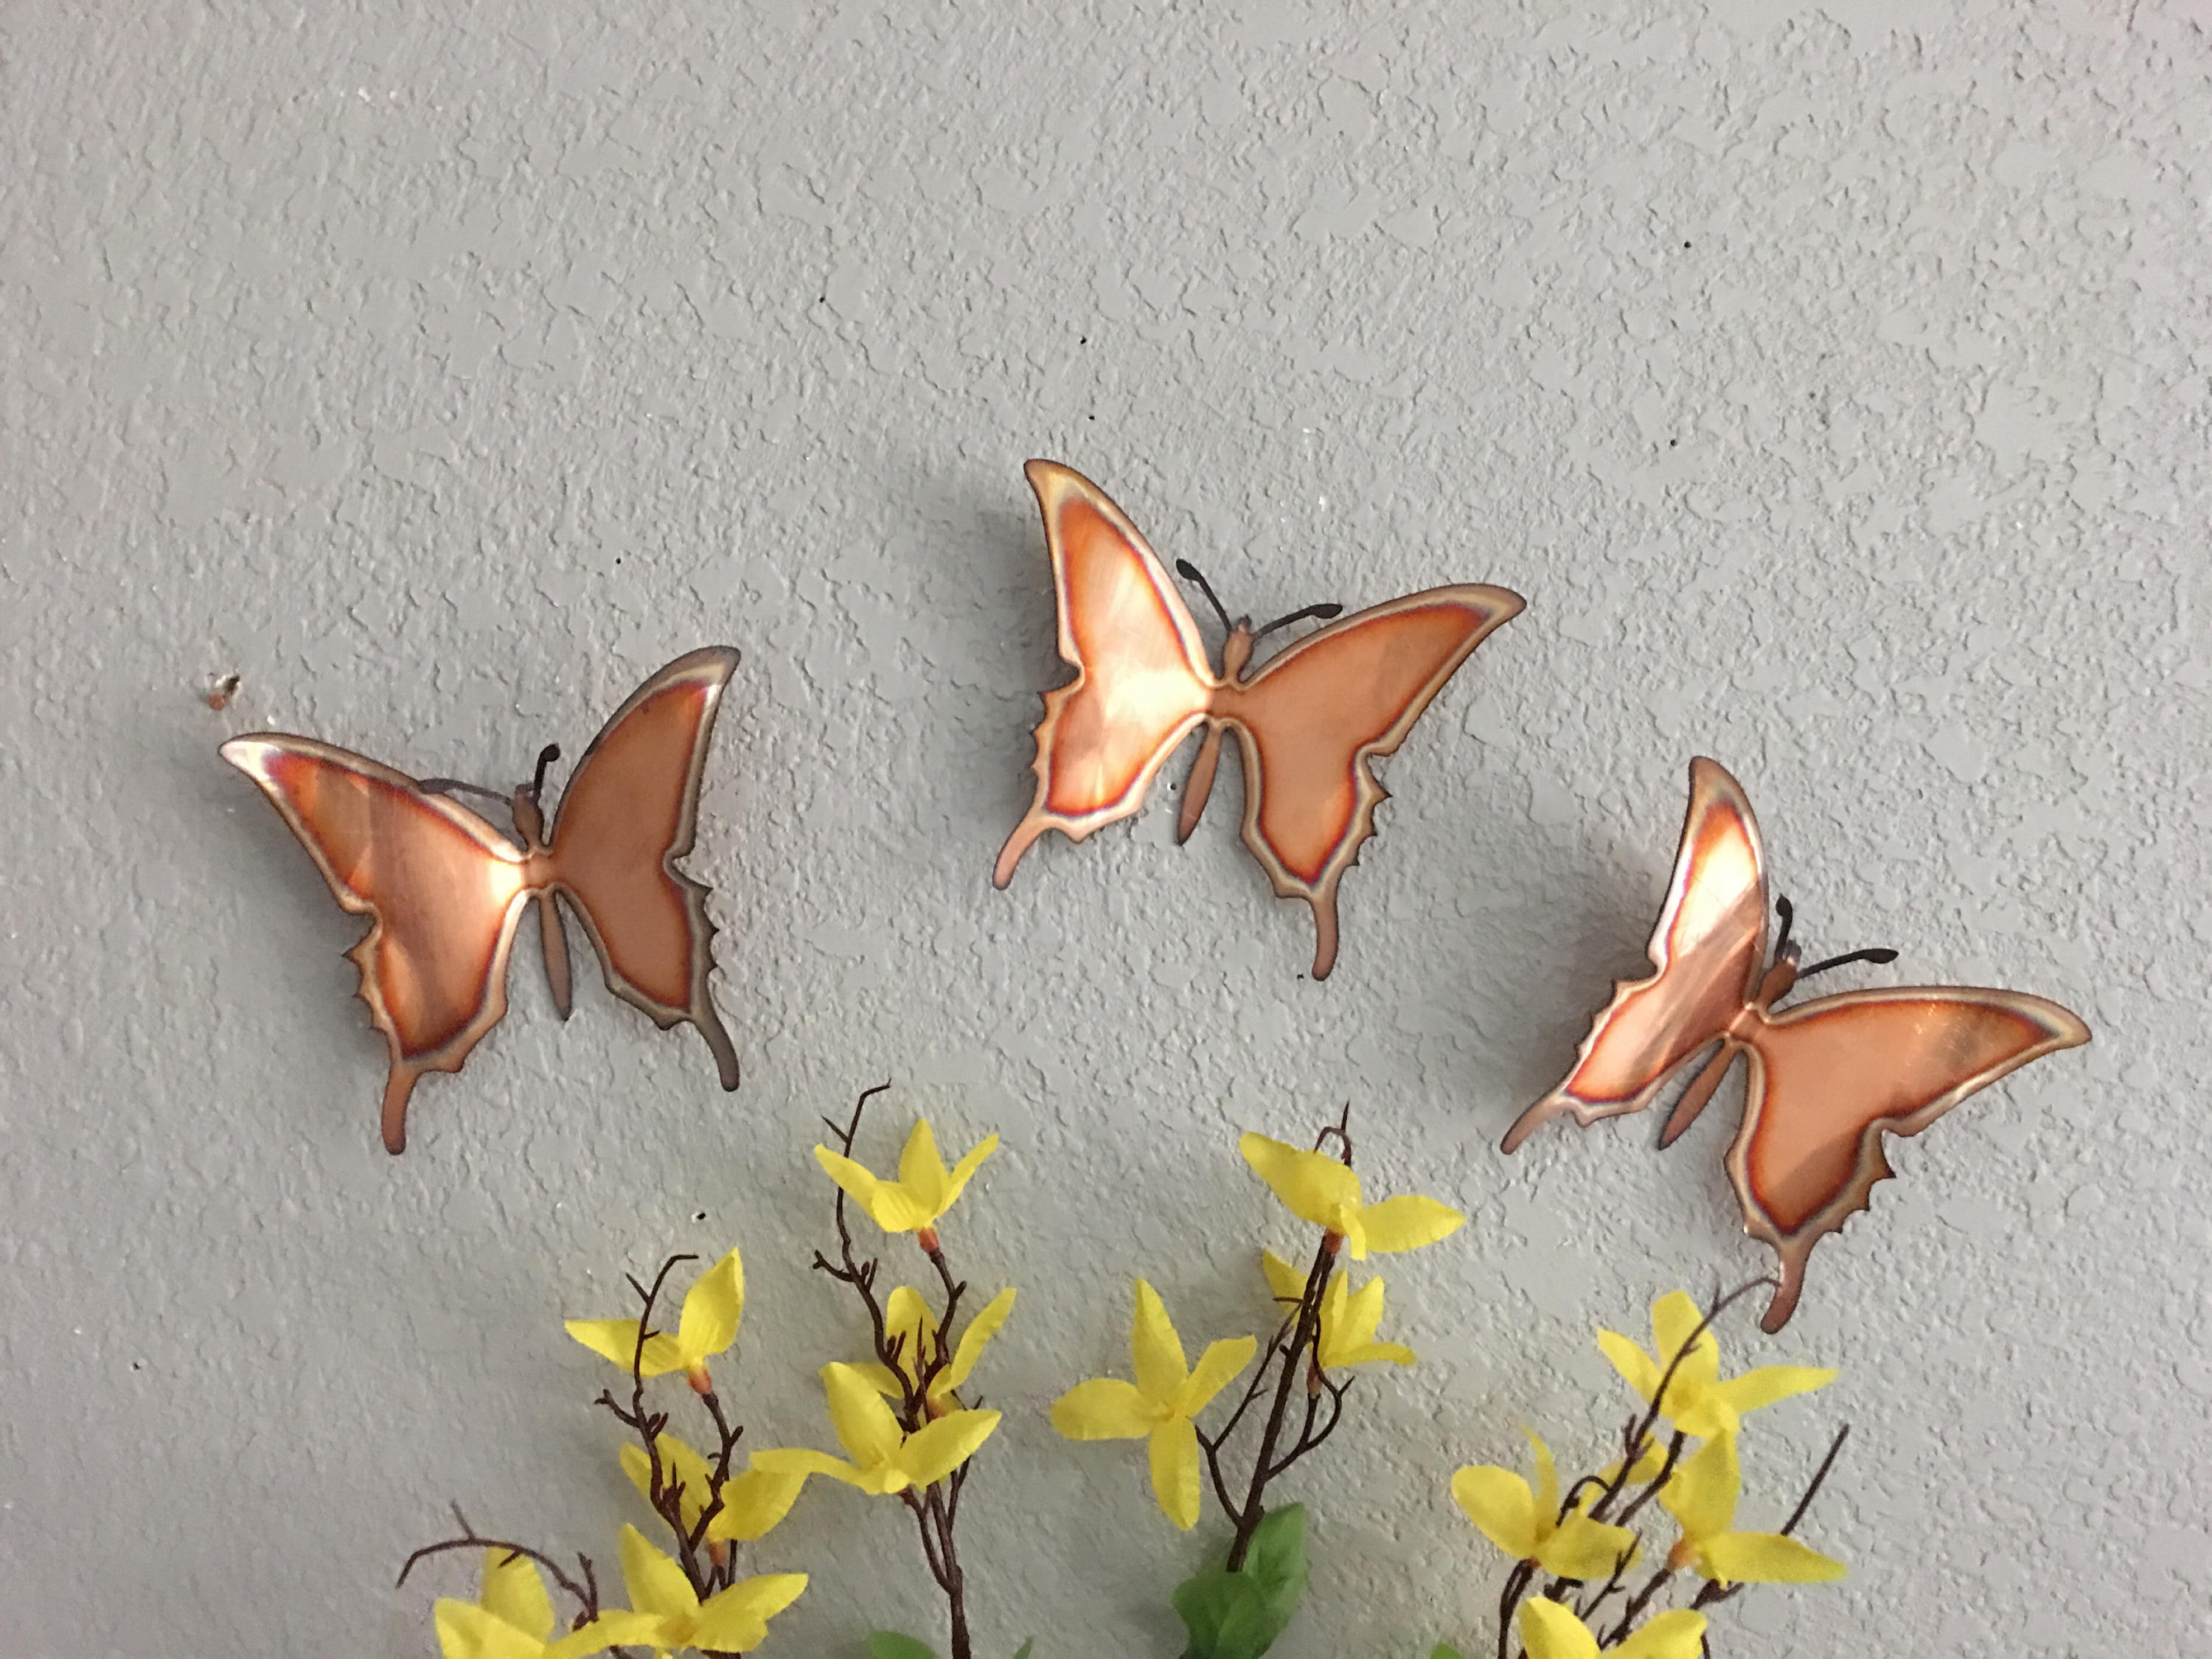 Current 3 Piece Capri Butterfly Wall Decor Sets With Copper Butterflies Set Of 3 Butterflies Wall Art Metal (View 12 of 20)